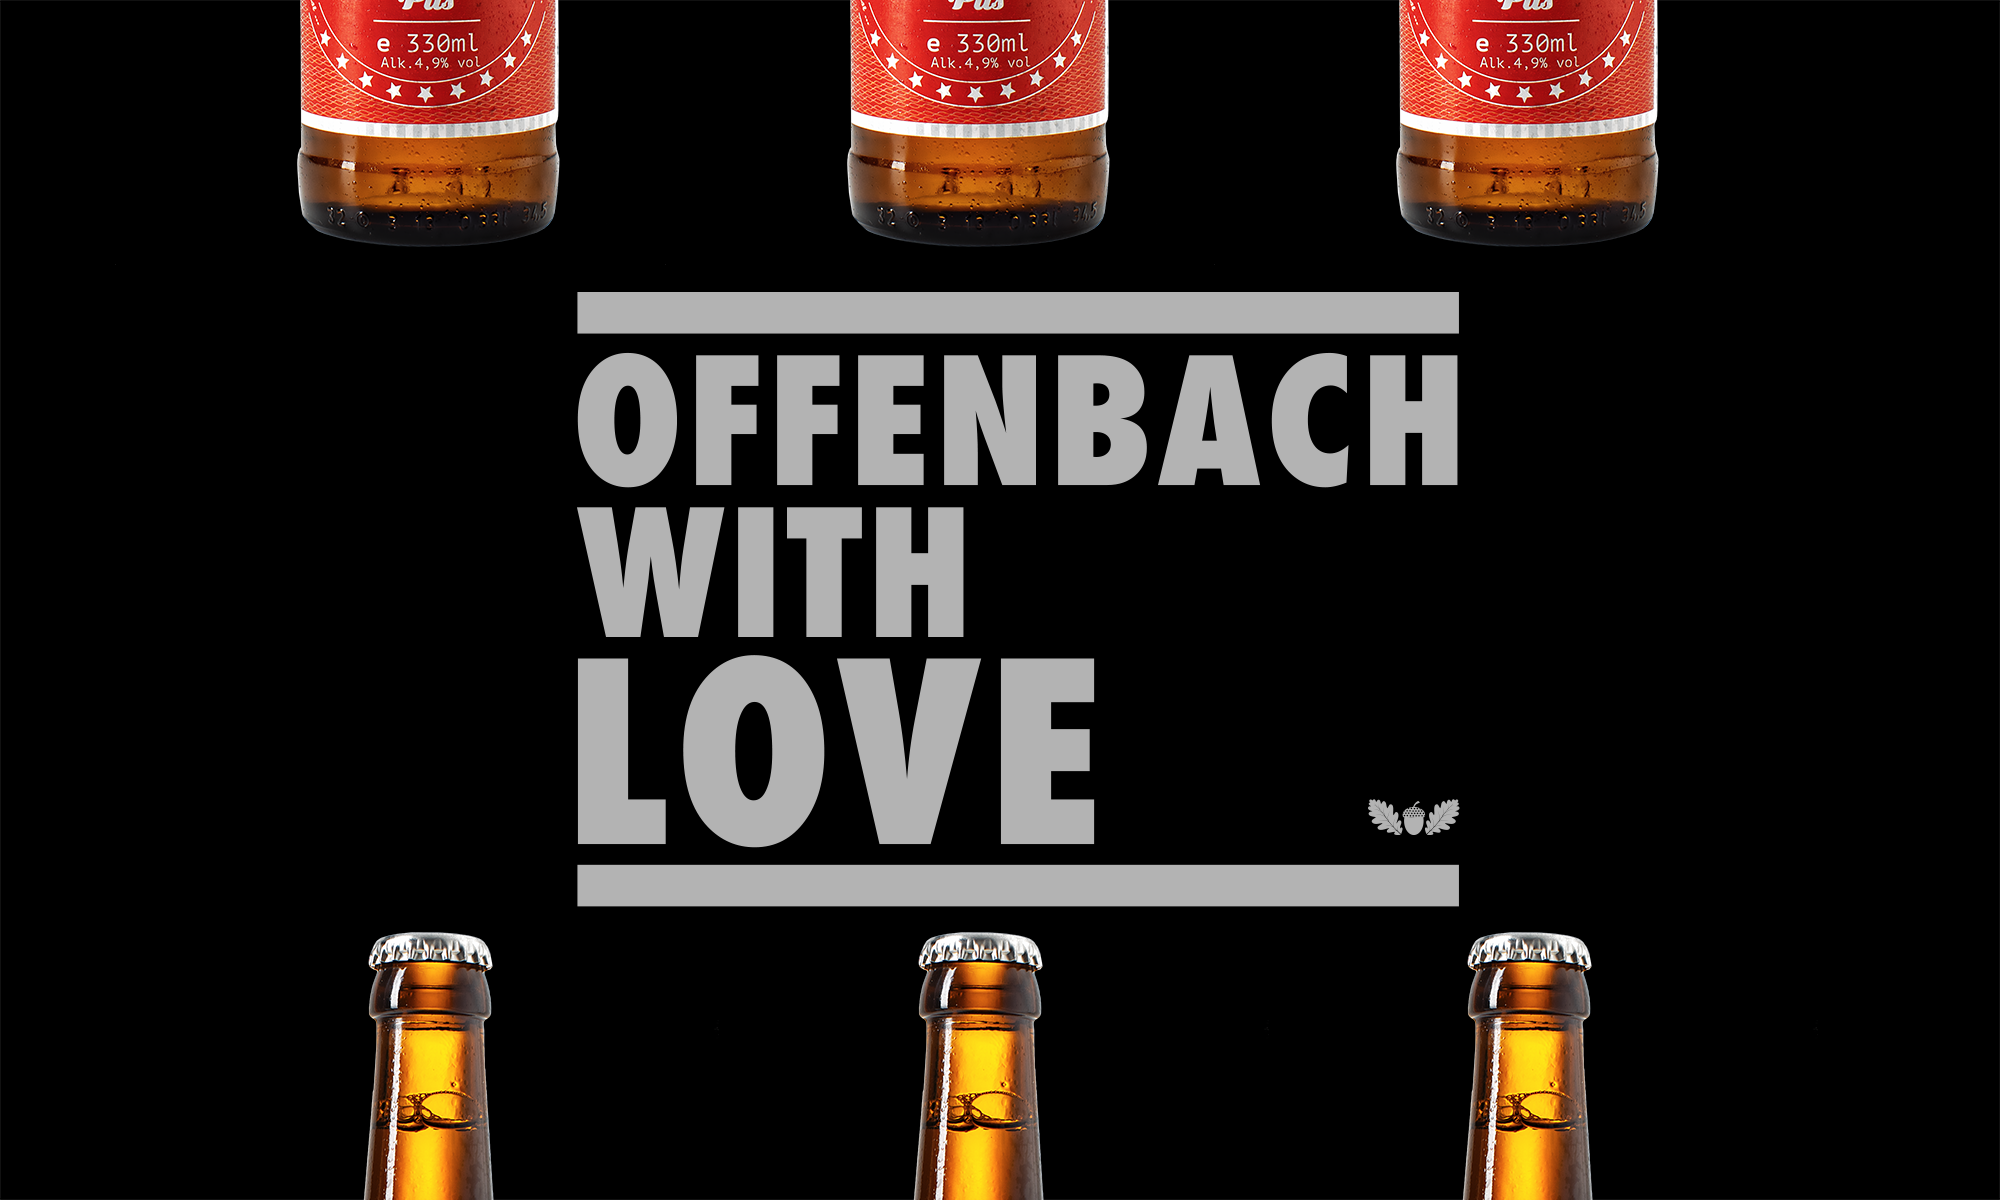 offenbach with love